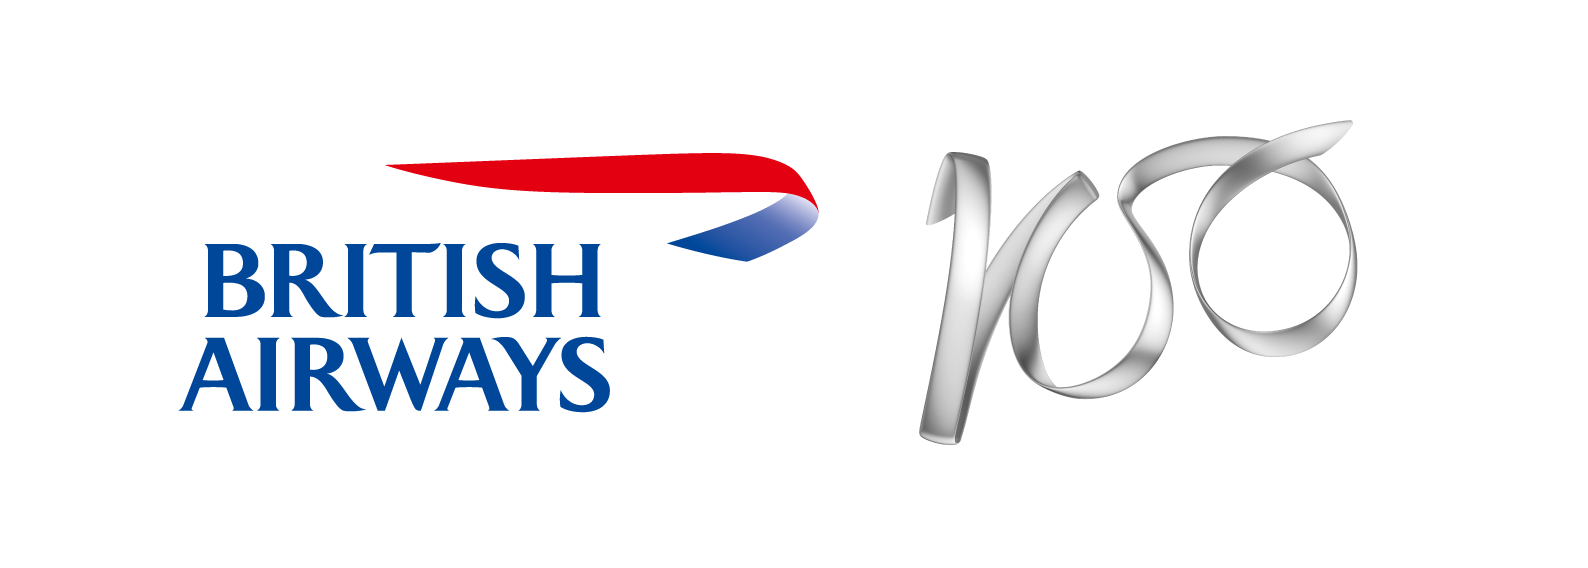 British Airways 100 Years Logo